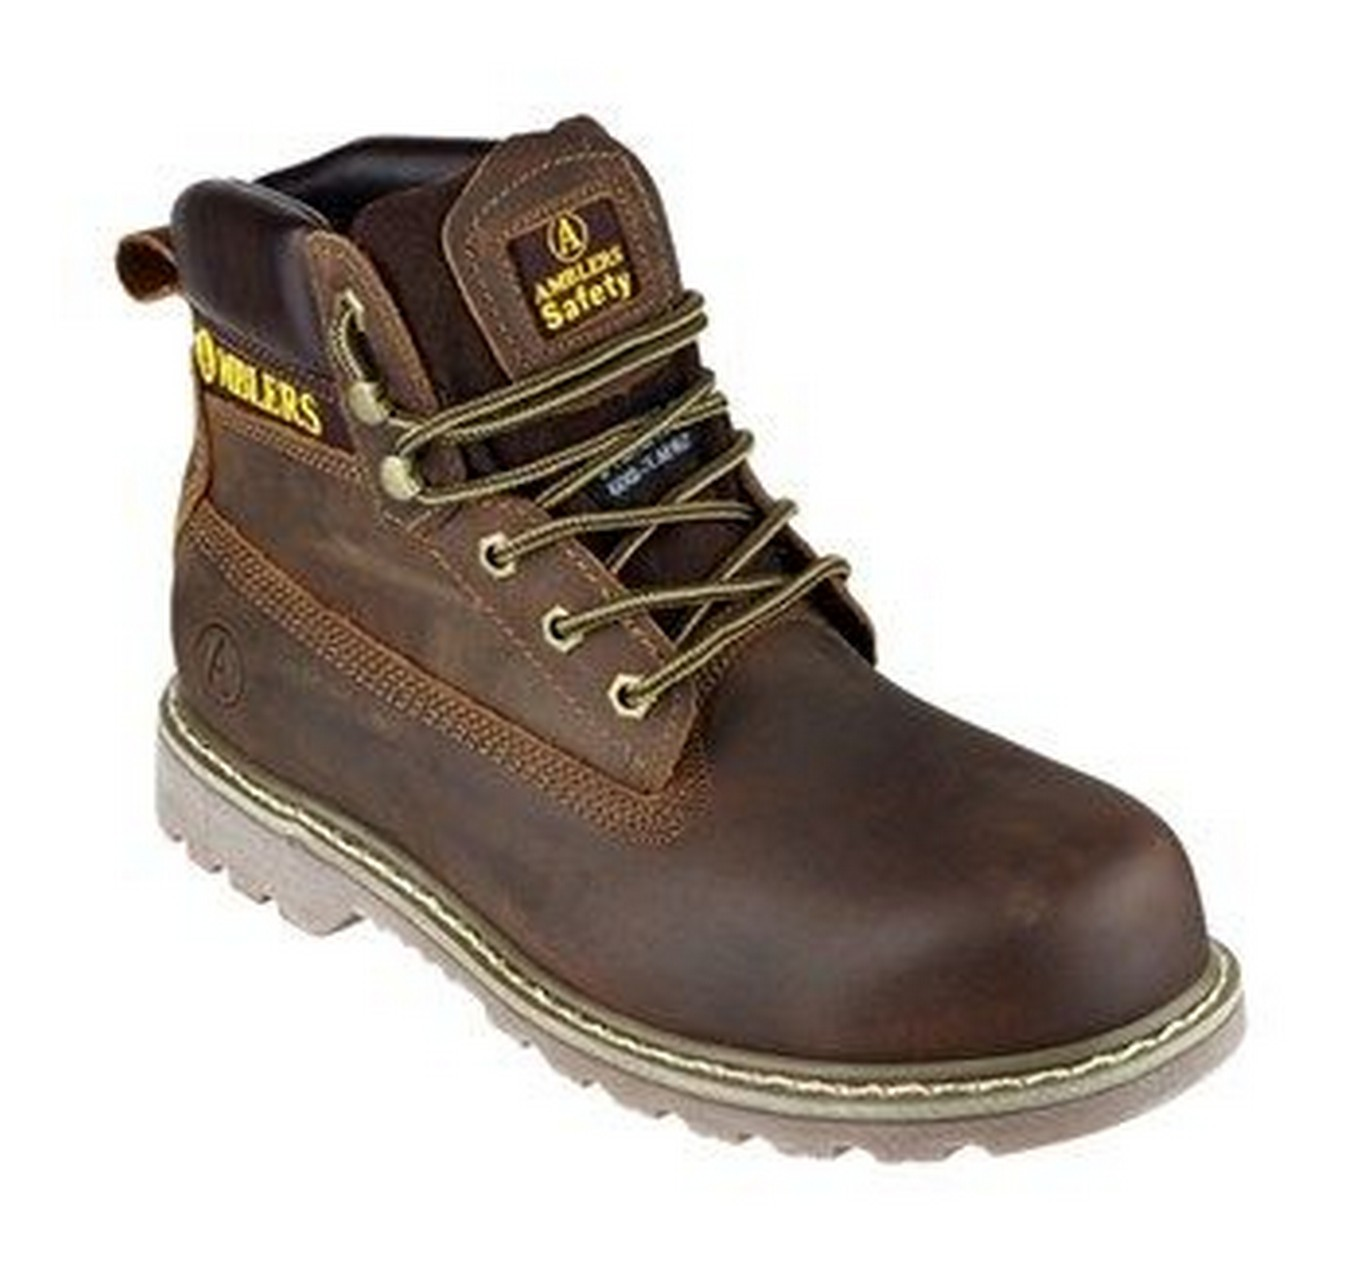 Safety Boot Amblers Fs164 10